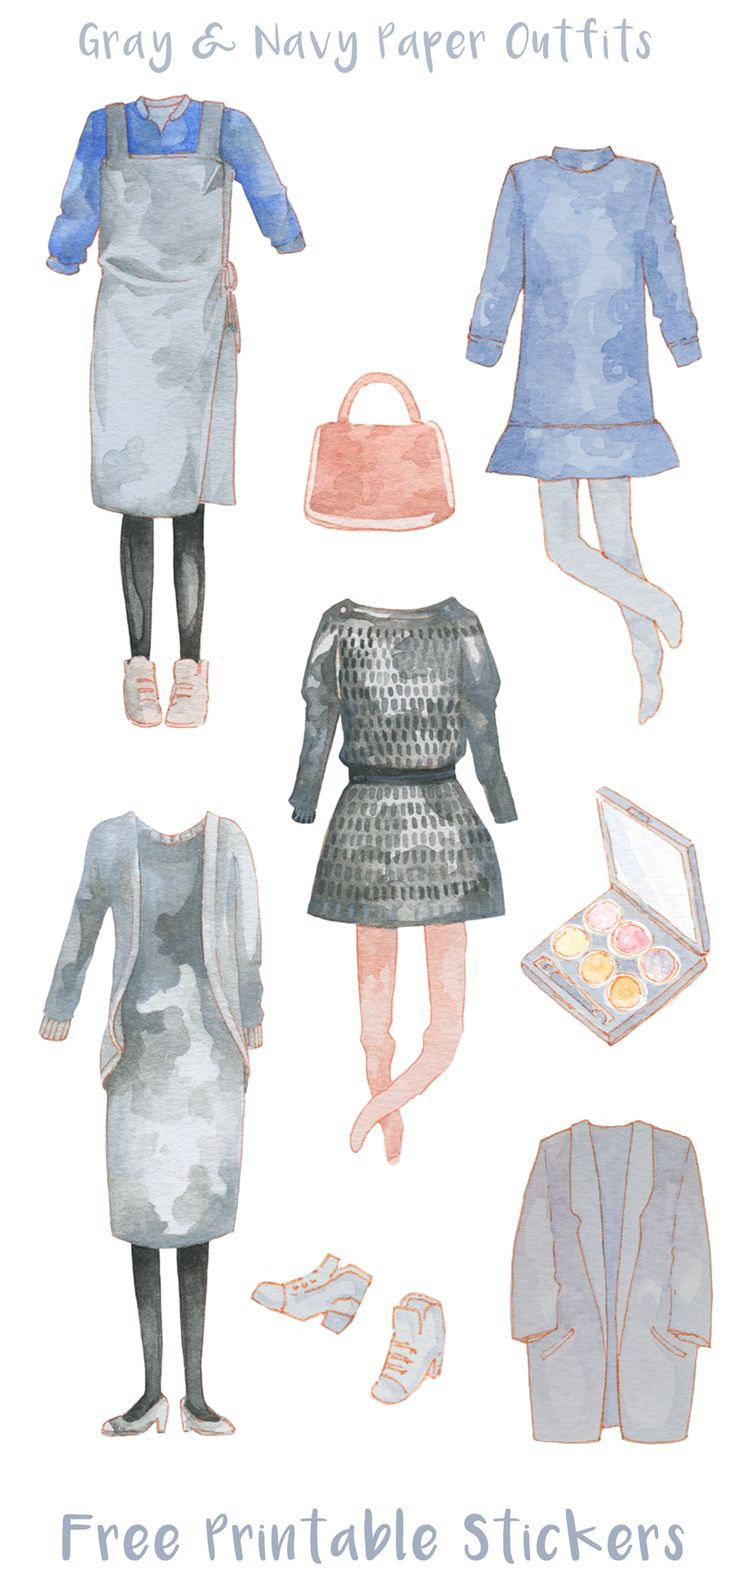 Free printable fashion stickers. Minimalist, navy & gray daily outfits and makeup illustration. These hand drawn watercolor pieces illustrate my blog post on Korean weddings, guest etiquette and wardrobe tips. They're perfect to decorate journals, planners and scrapbooks!